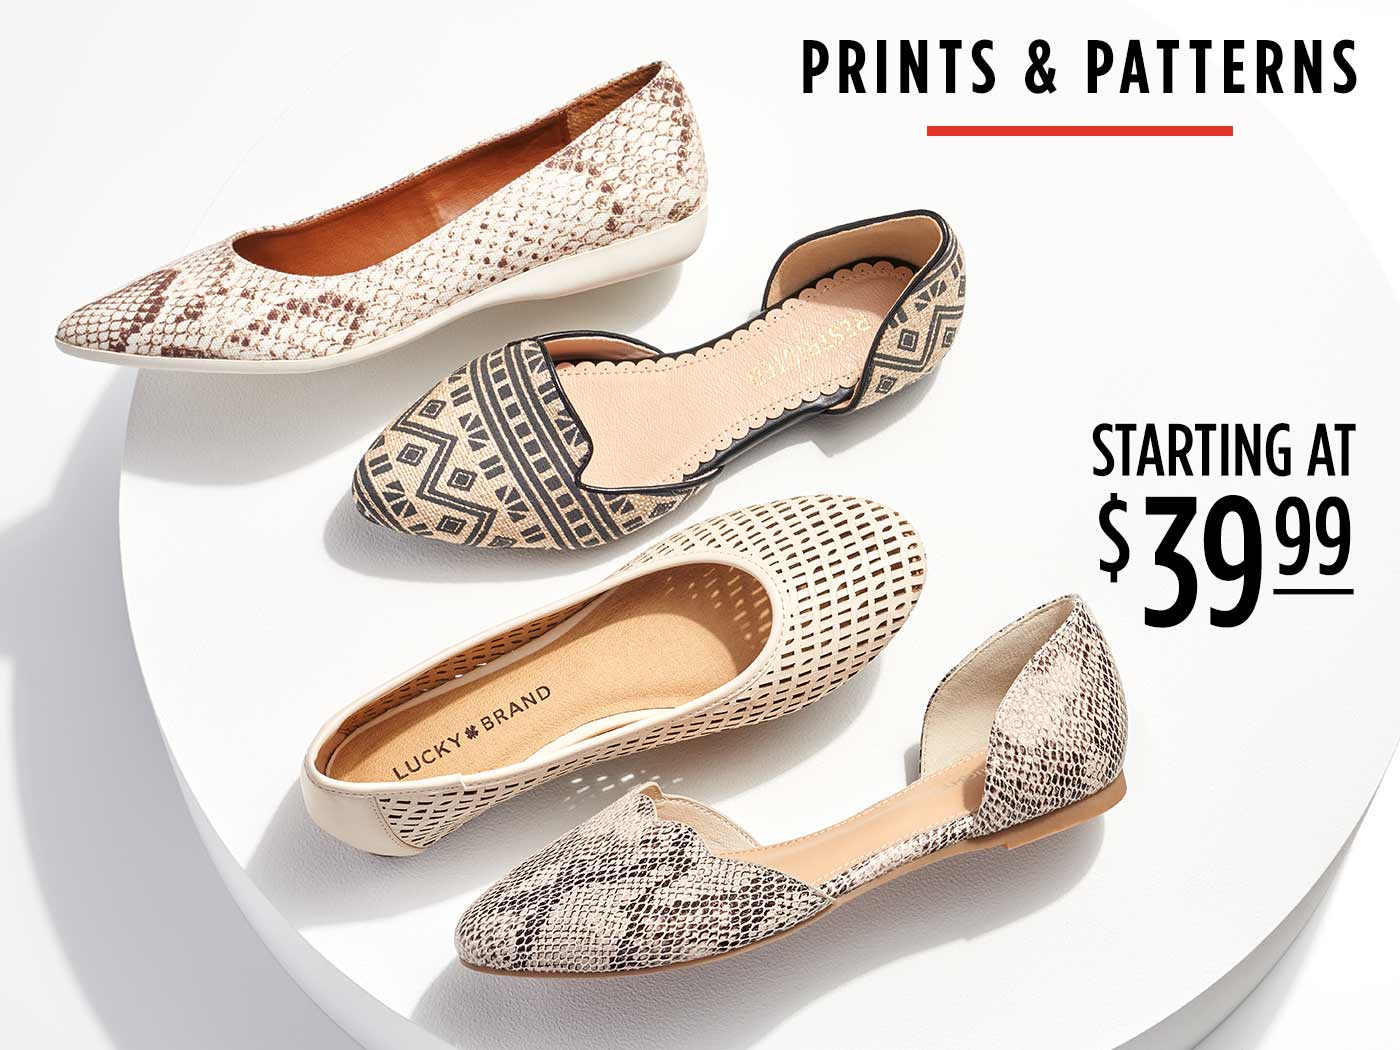 assorted womens flats starting at $39.99